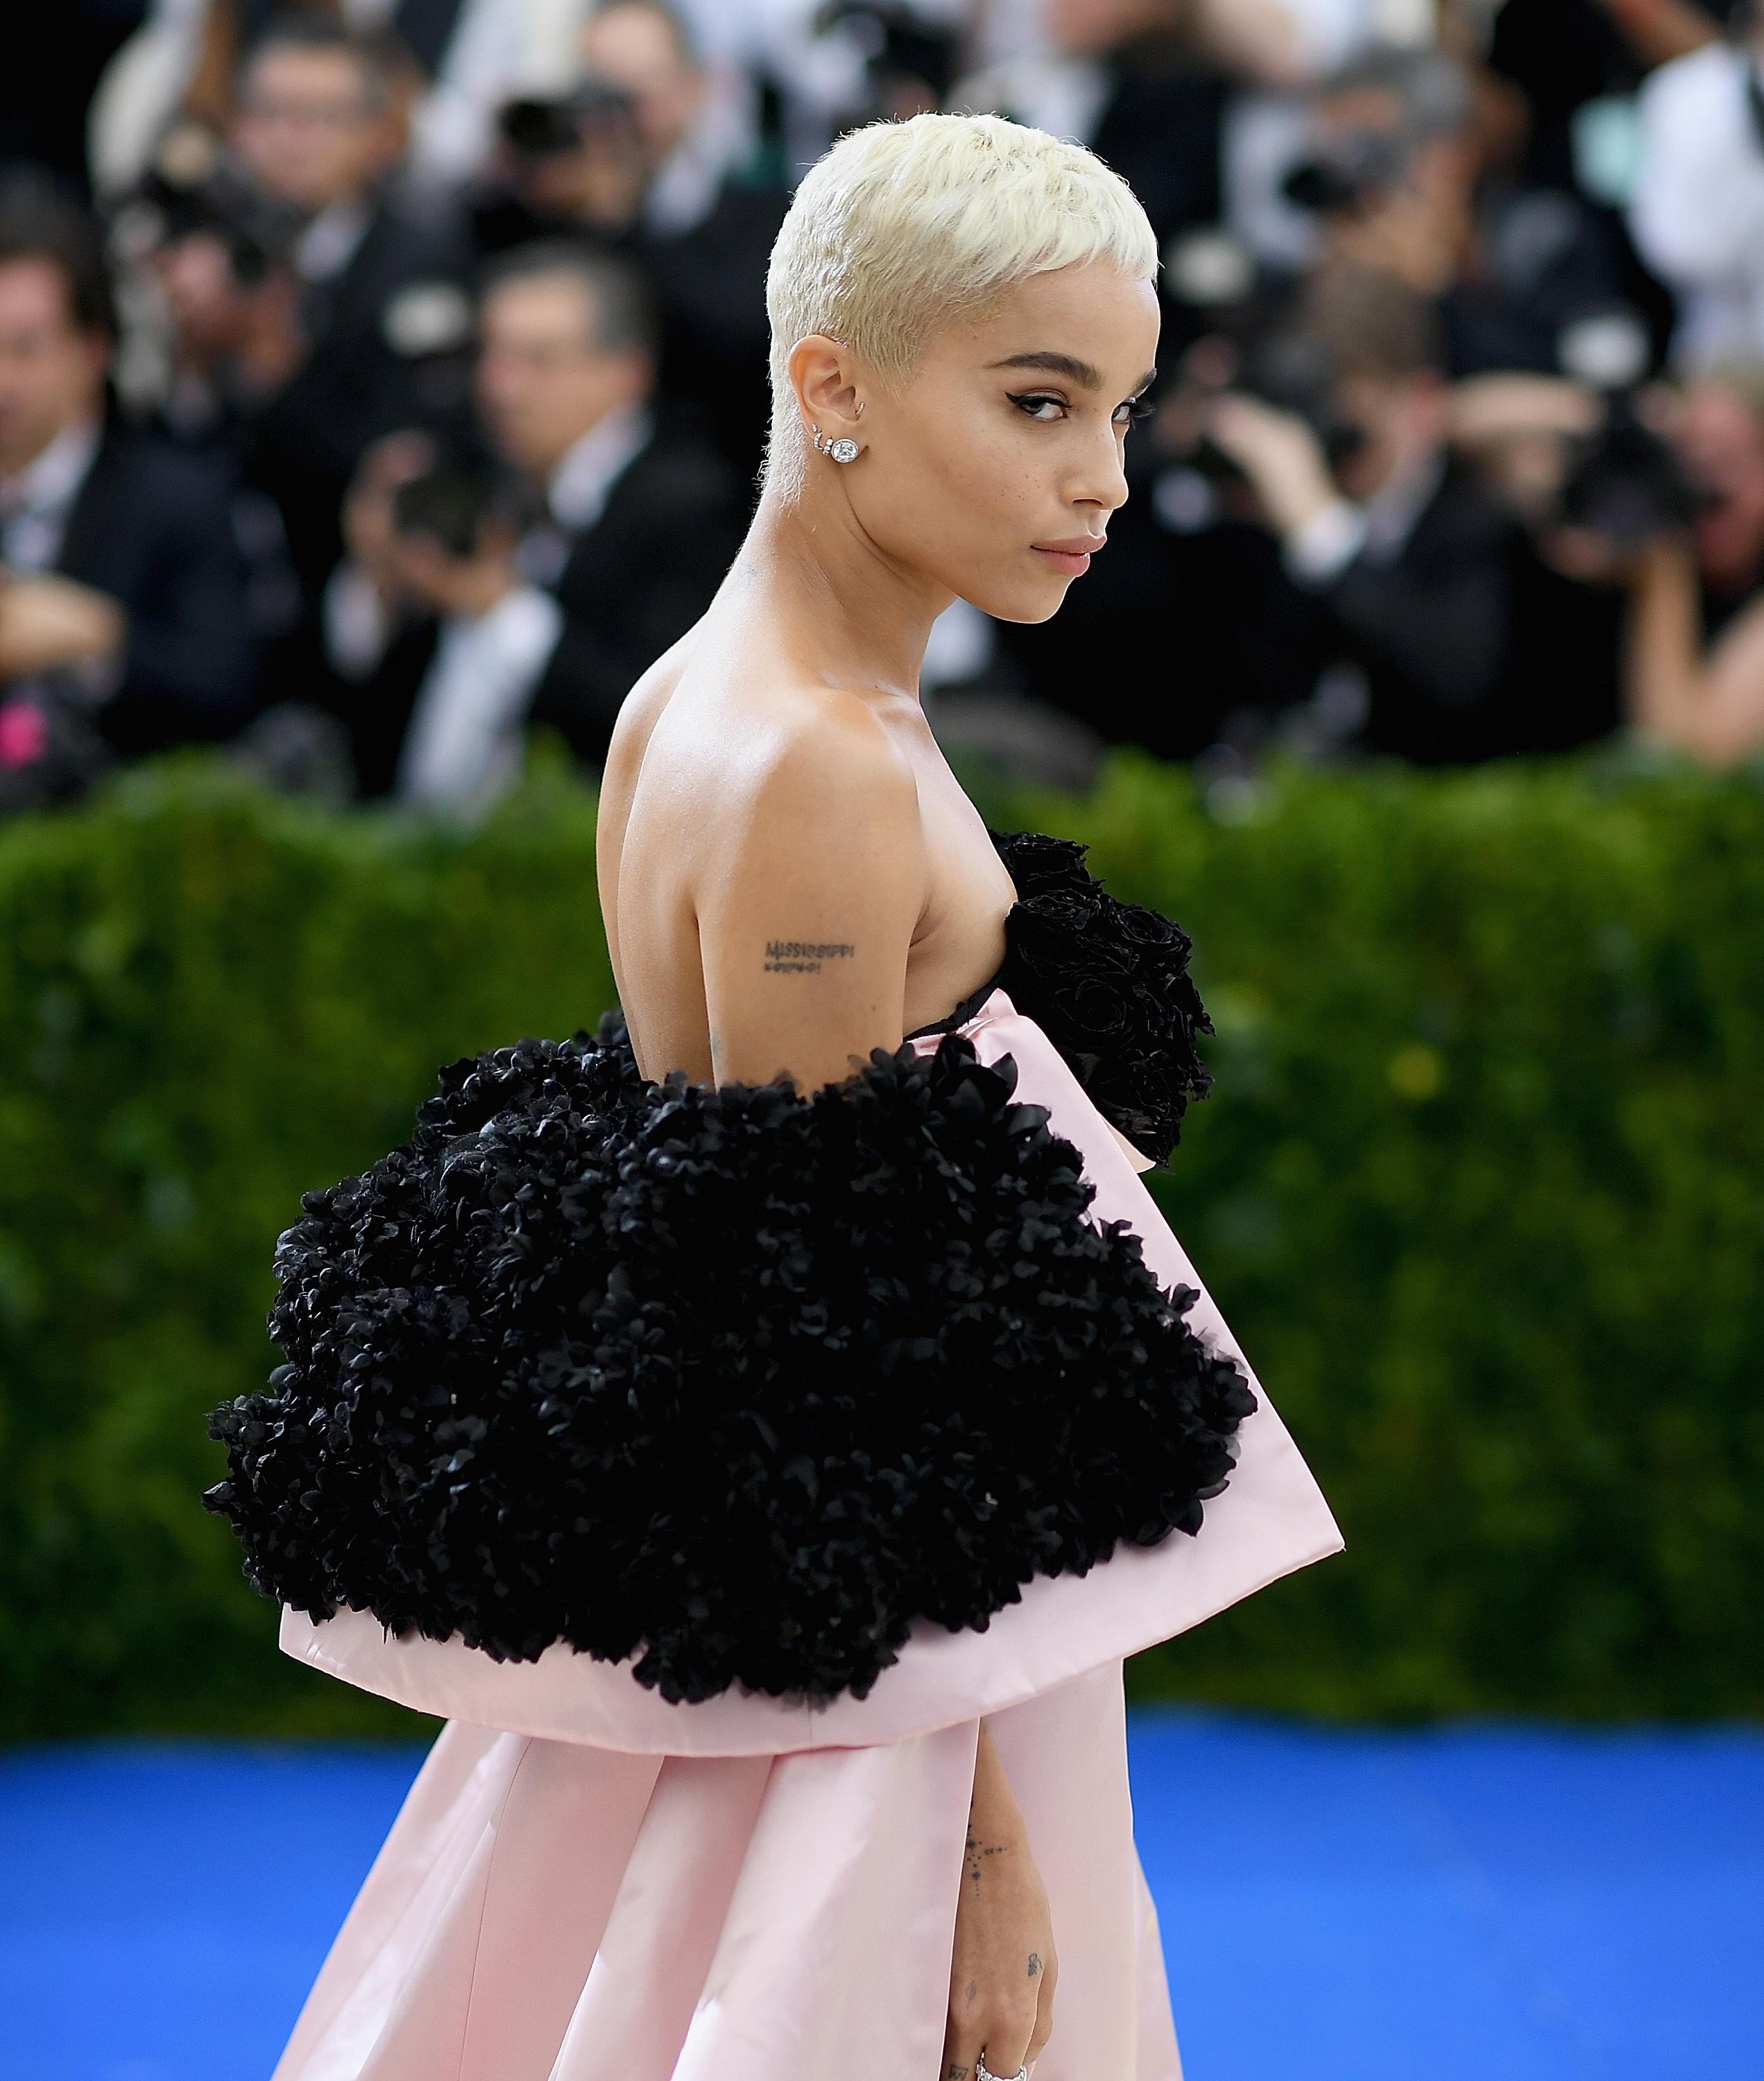 NEW YORK, NEW YORK - MAY 01: Zoe Kravitz attends the 'Rei Kawakubo/Comme des Garcons: Art Of The In-Between' Costume Institute Gala at Metropolitan Museum of Art on May 1, 2017 in New York City. (Photo by Dimitrios Kambouris/Getty Images)